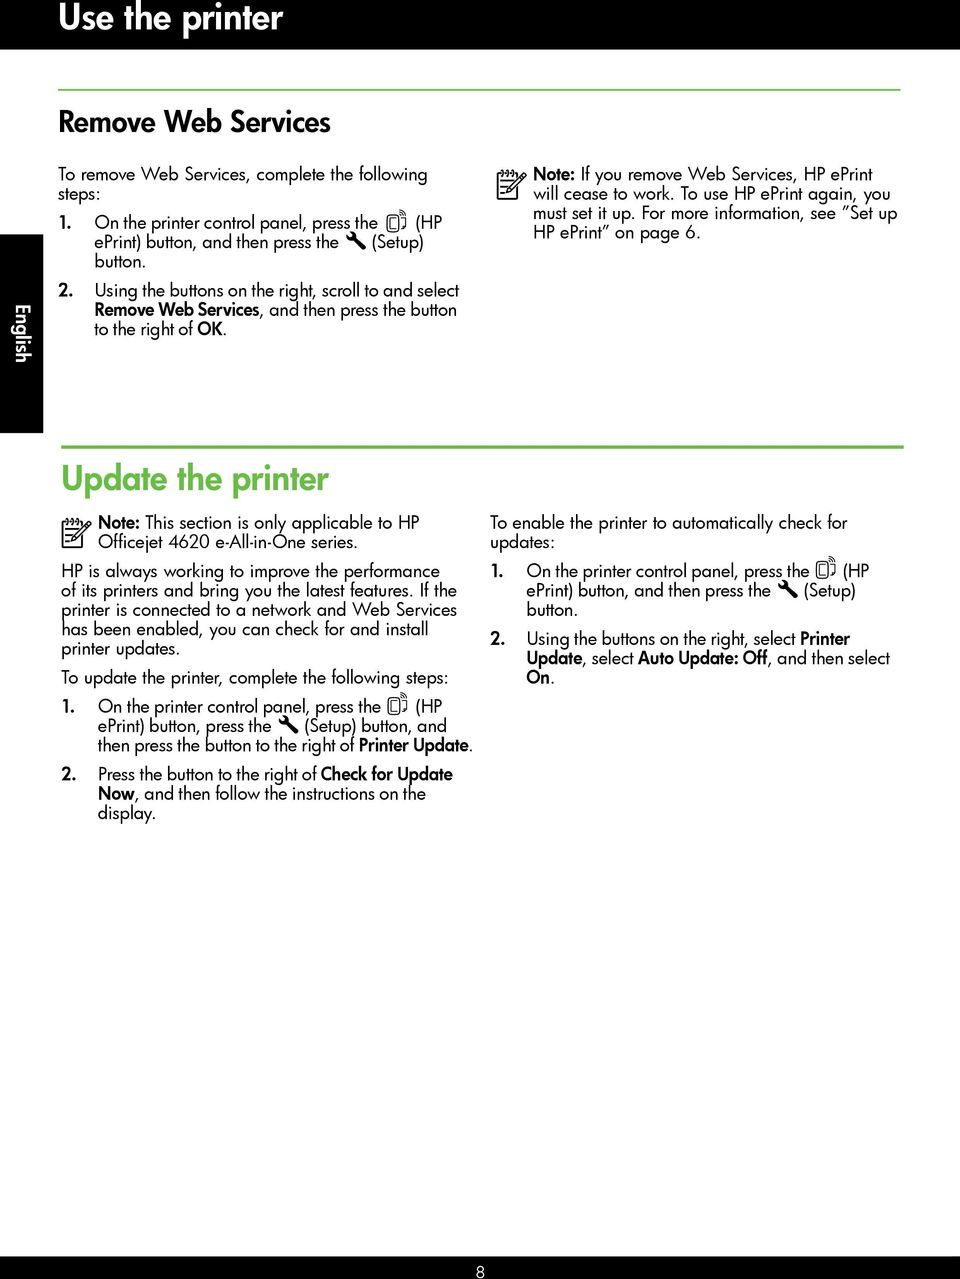 To use HP eprint again, you must set it up. For more information, see Set up HP eprint on page 6. Update the printer Note: This section is only applicable to HP Officejet 4620 e-all-in-one series.